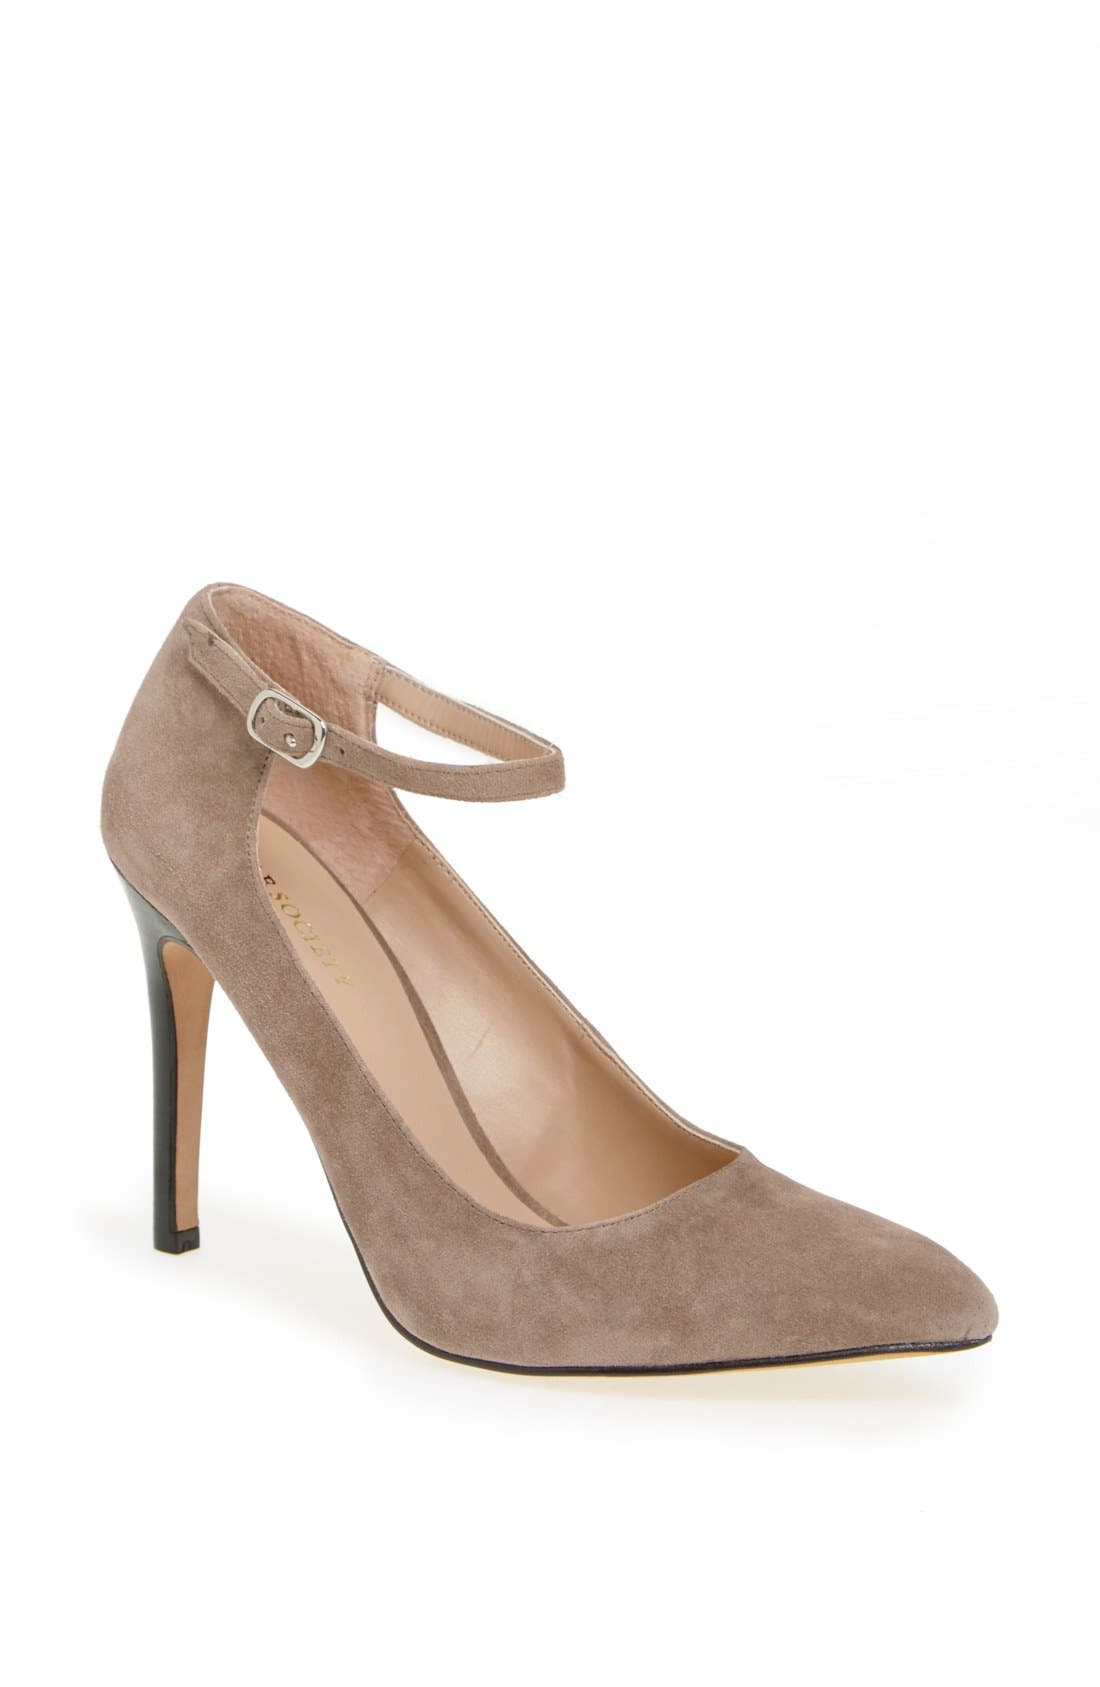 Alternate Image 1 Selected - Sole Society 'Averi' Pump